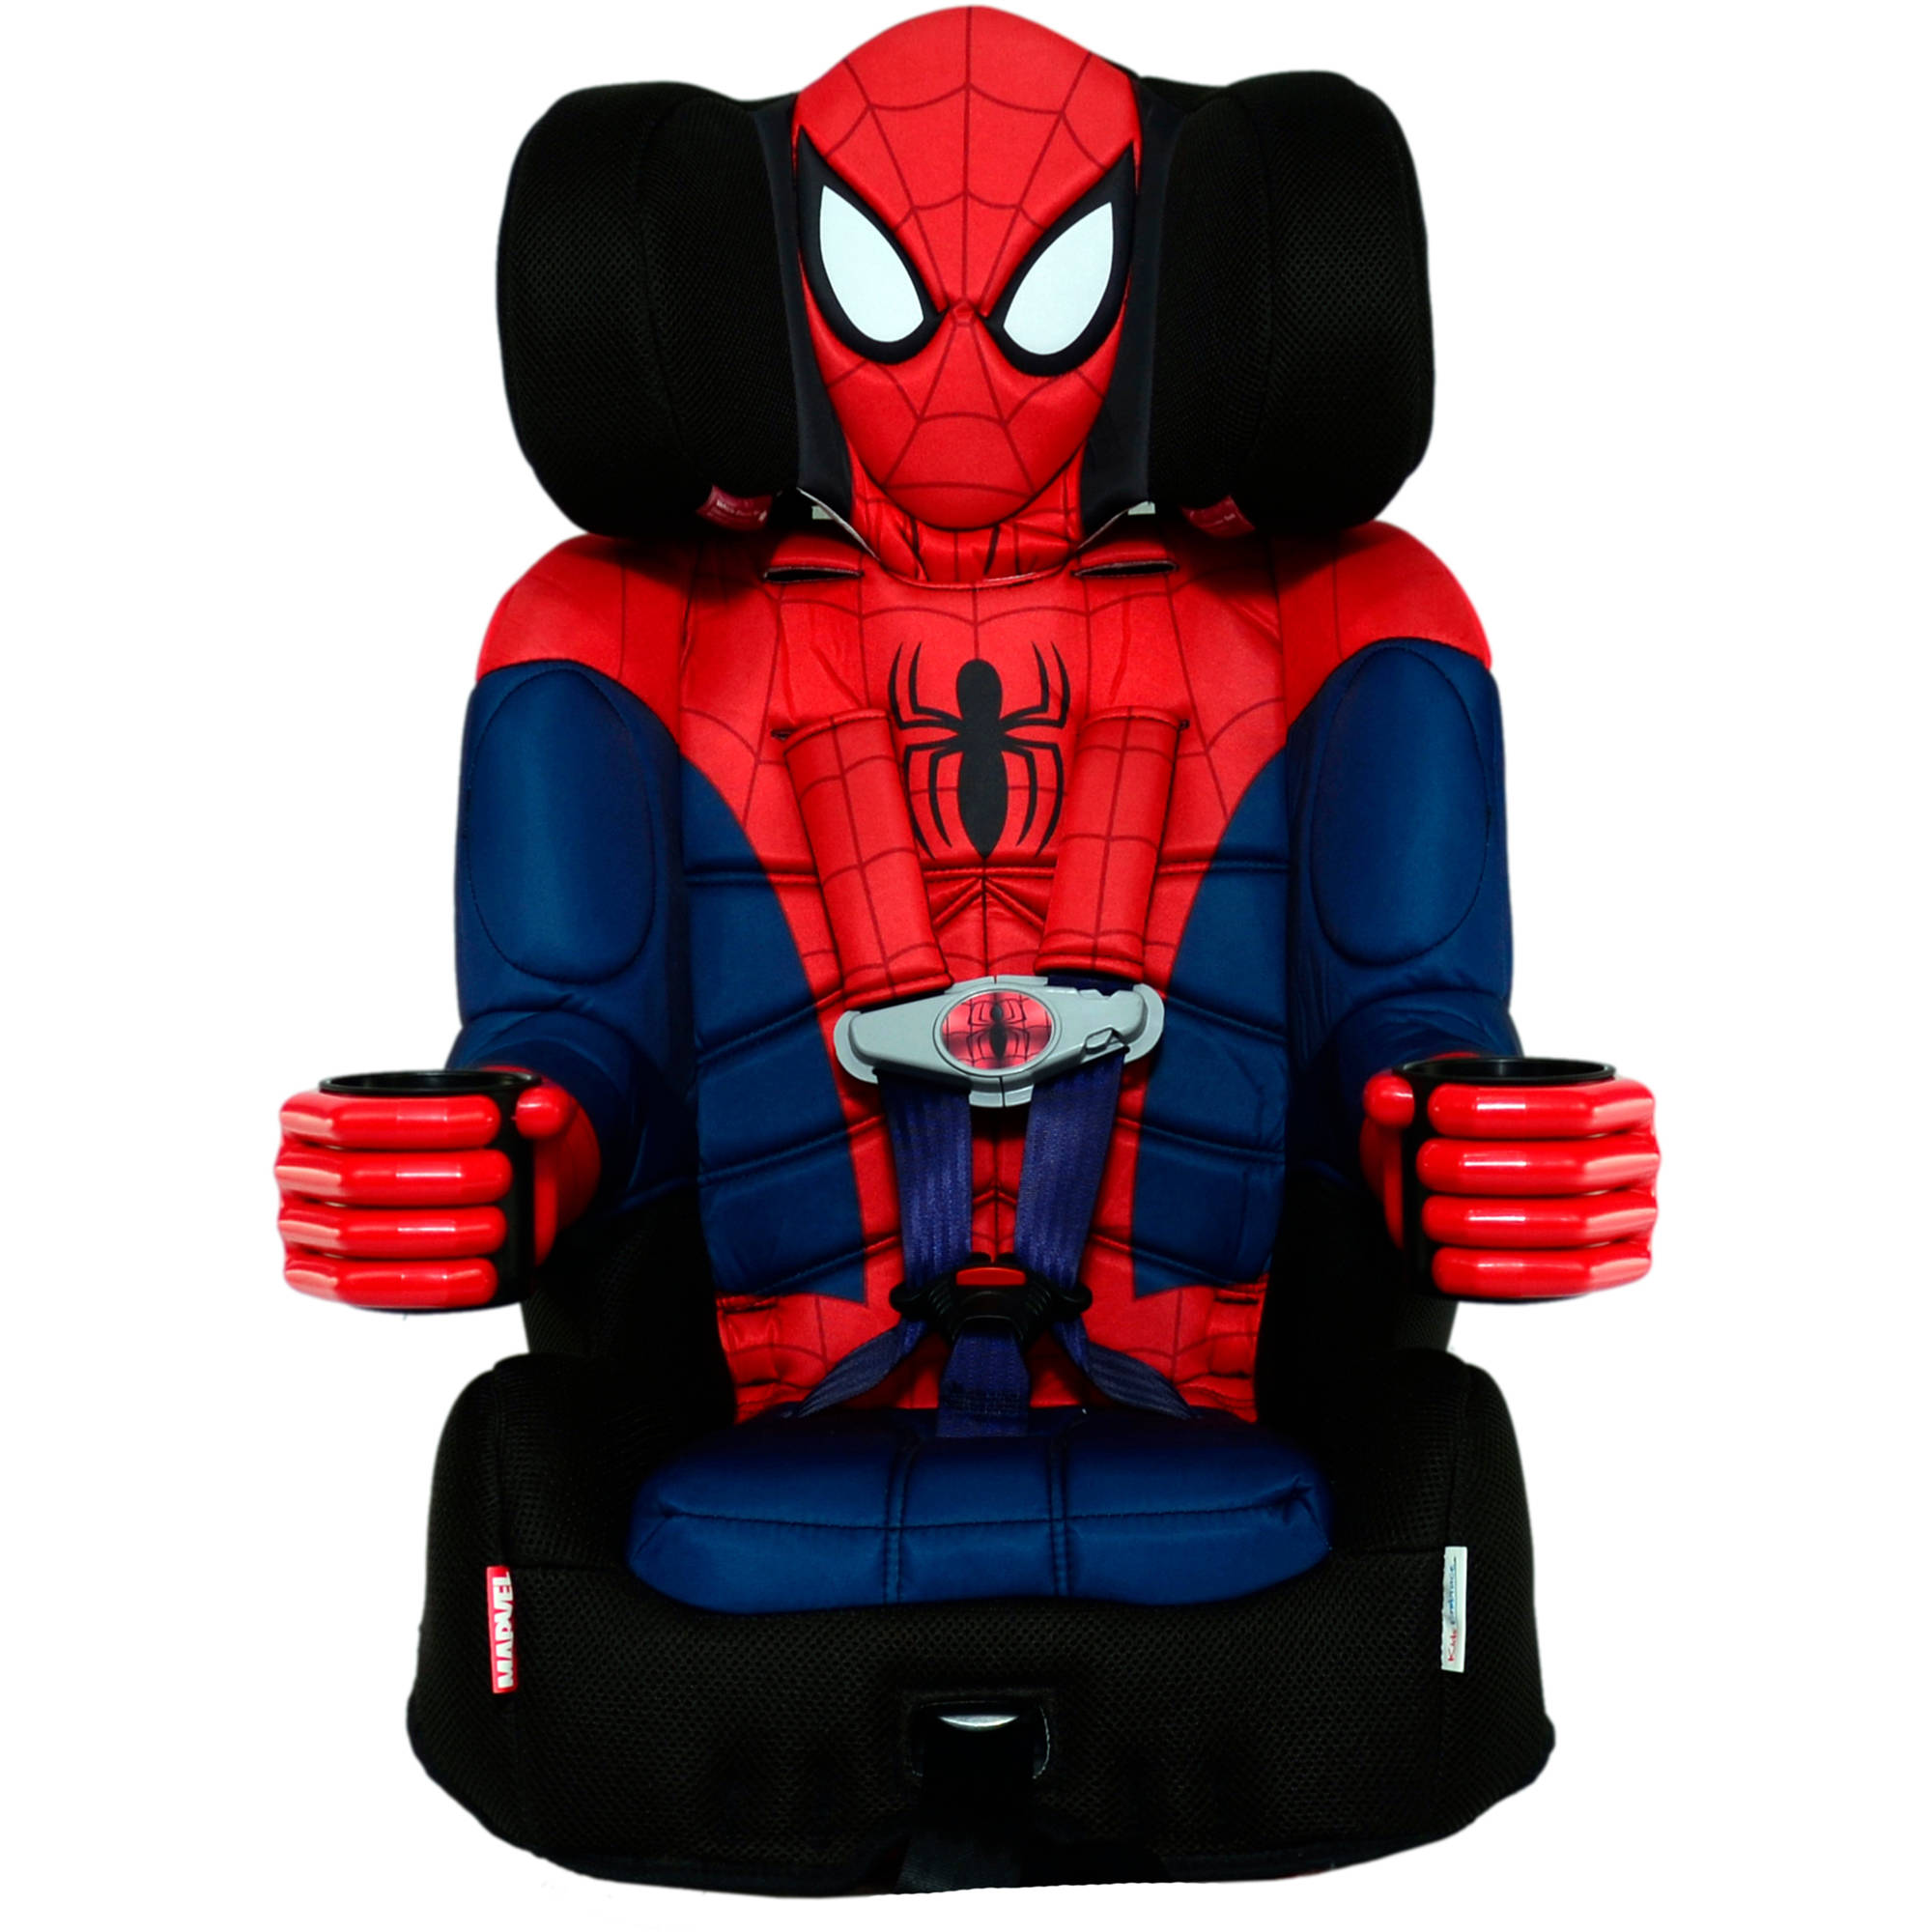 Kidsembrace Friendship Combination Harness Booster Car Seat, Ultimate Spider-Man